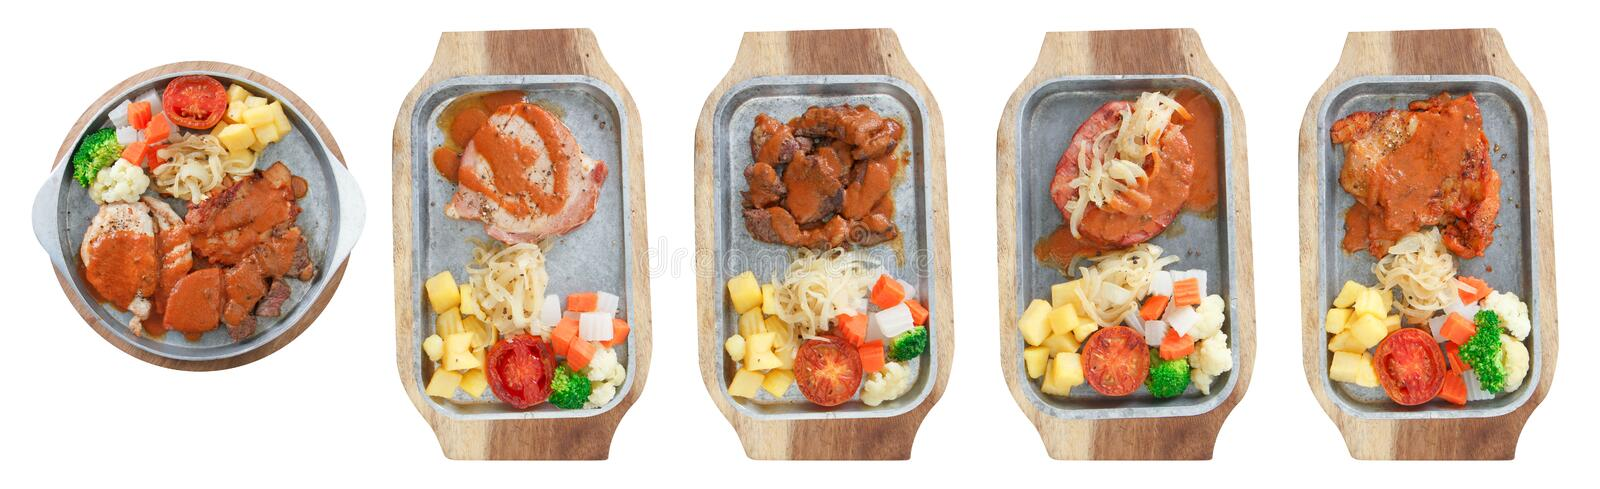 Steaks set on wood plate with isolated photo style. 5 Steaks set on wood plate with isolated photo styles food and isolated royalty free stock photography